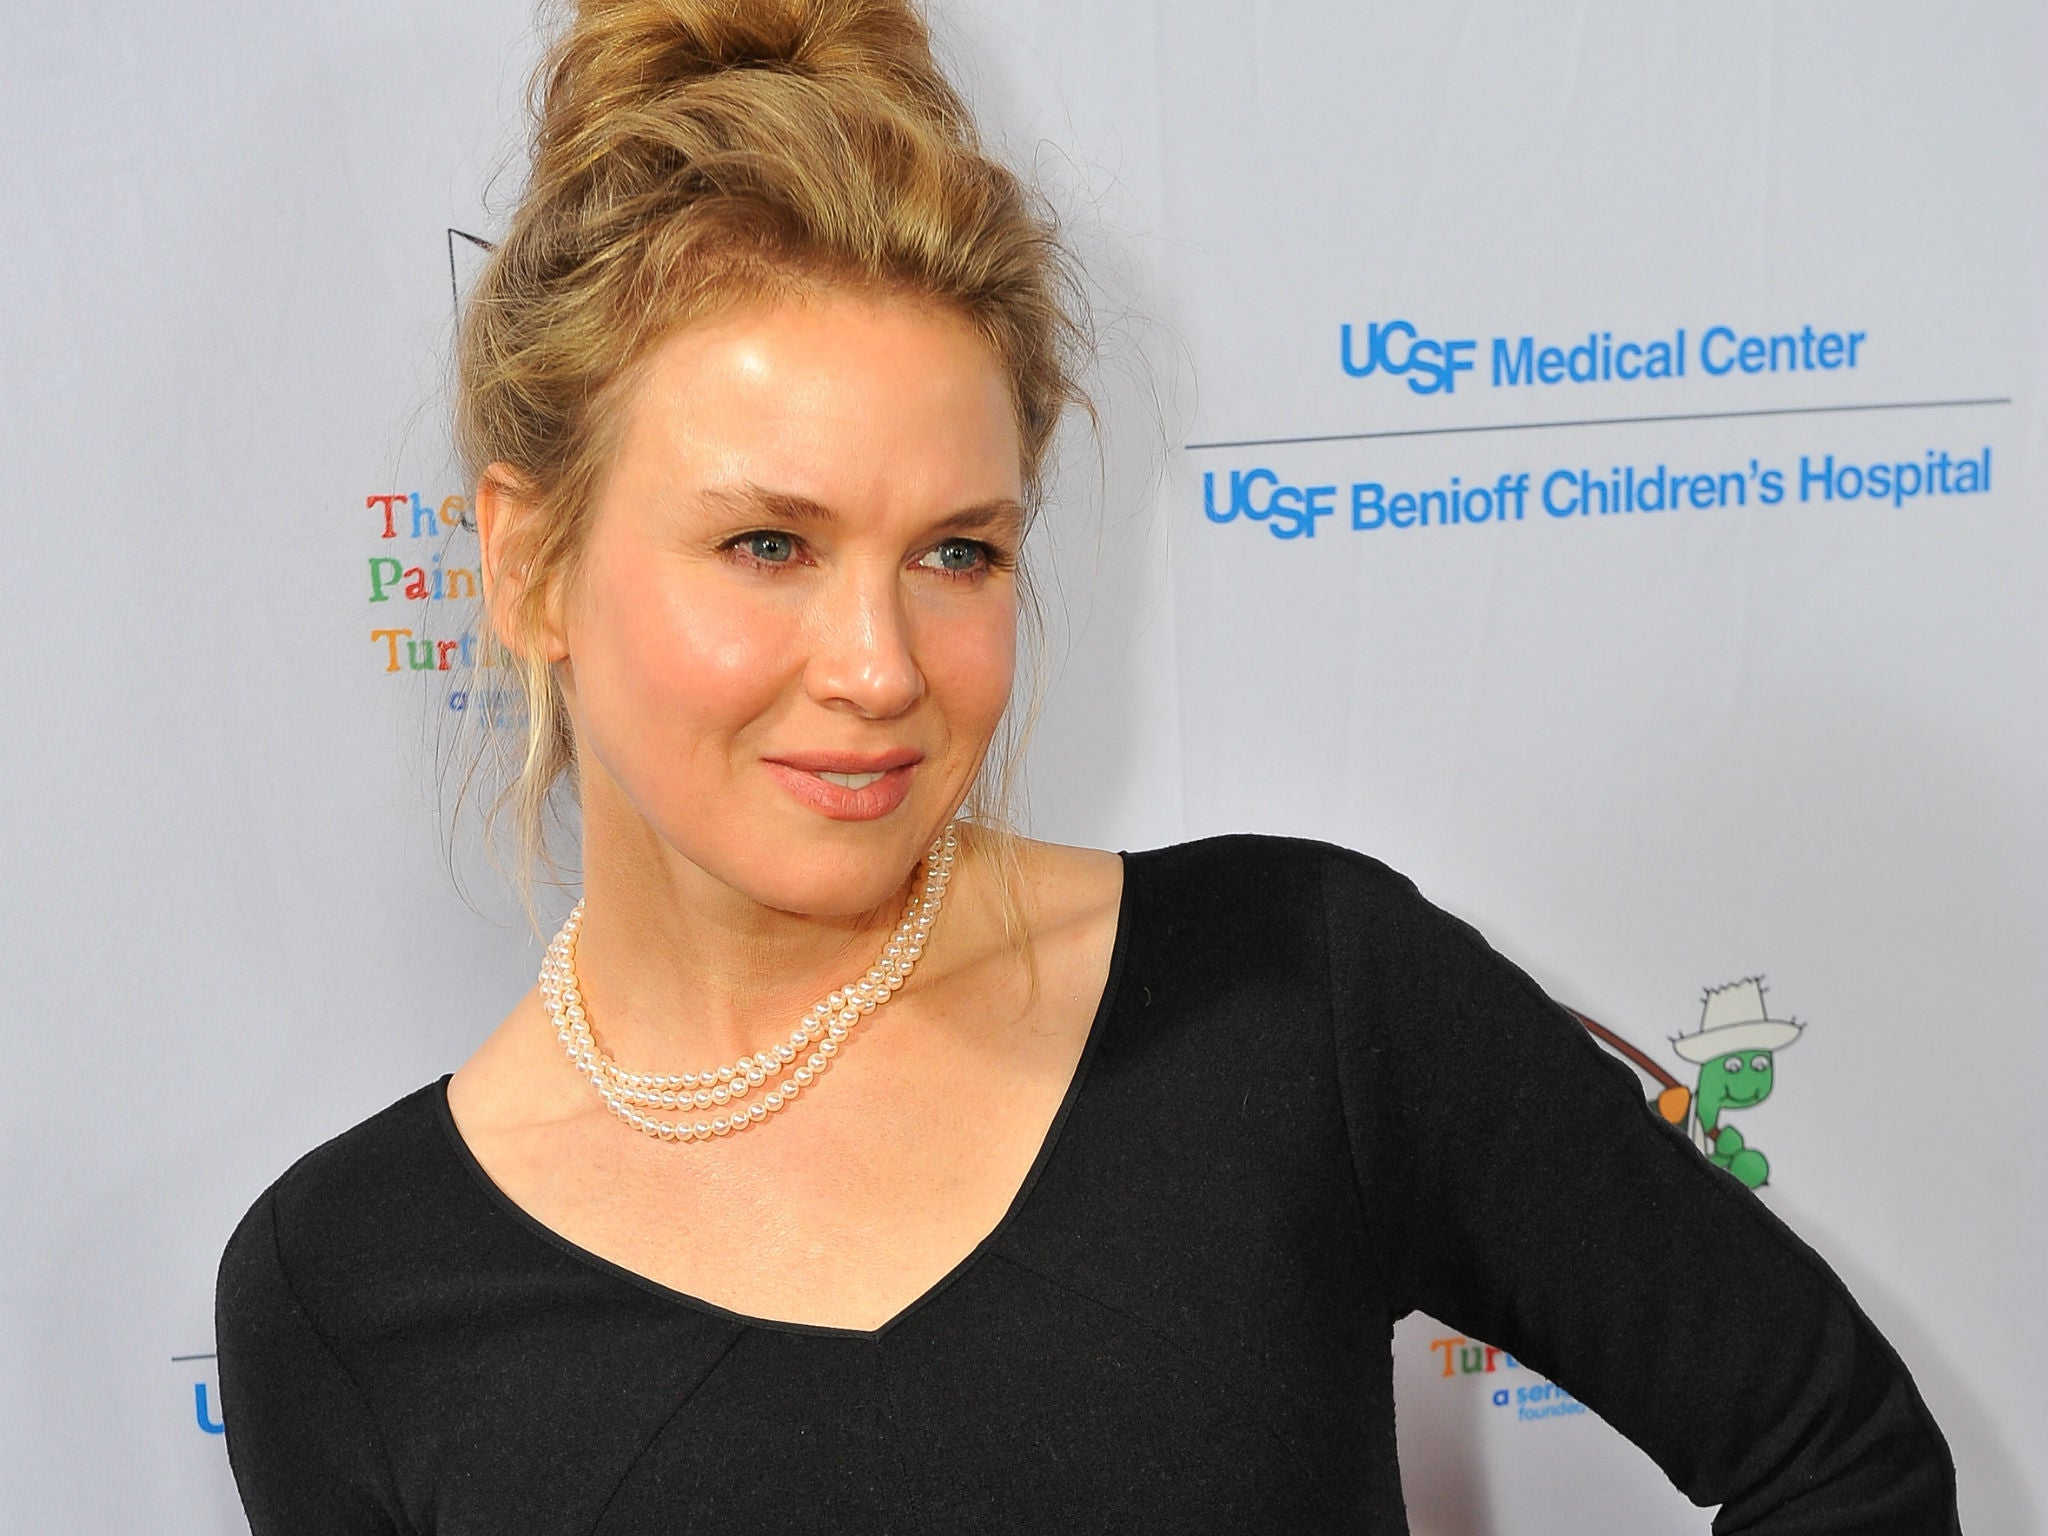 Renee Zellweger on impact of having her face criticised ... Renee Zellweger